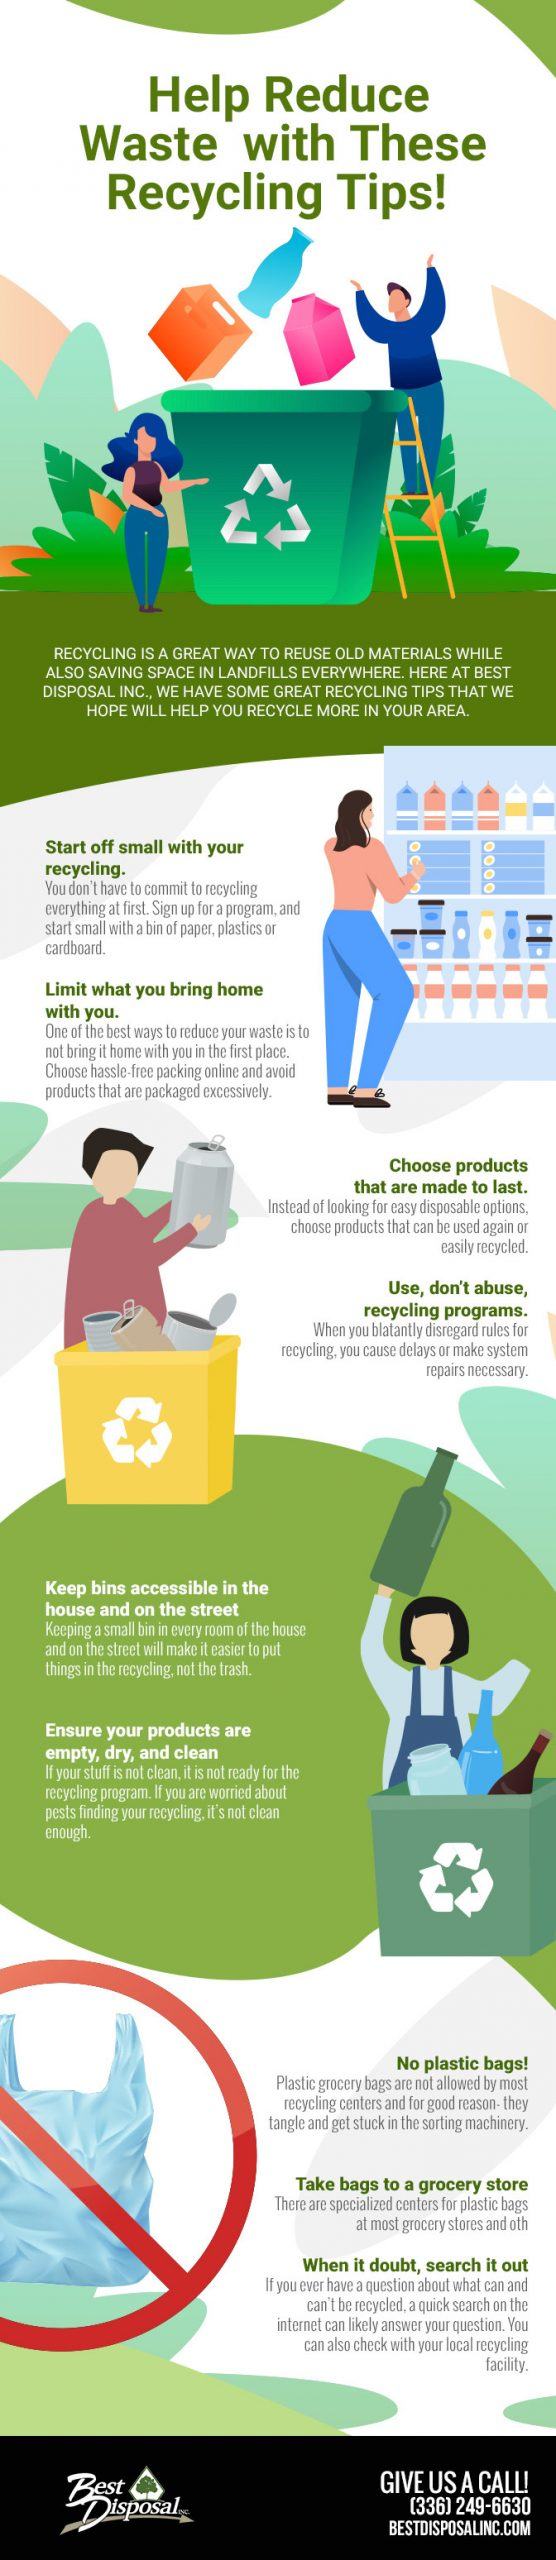 Help Reduce Waste with These Recycling Tips! [infographic]